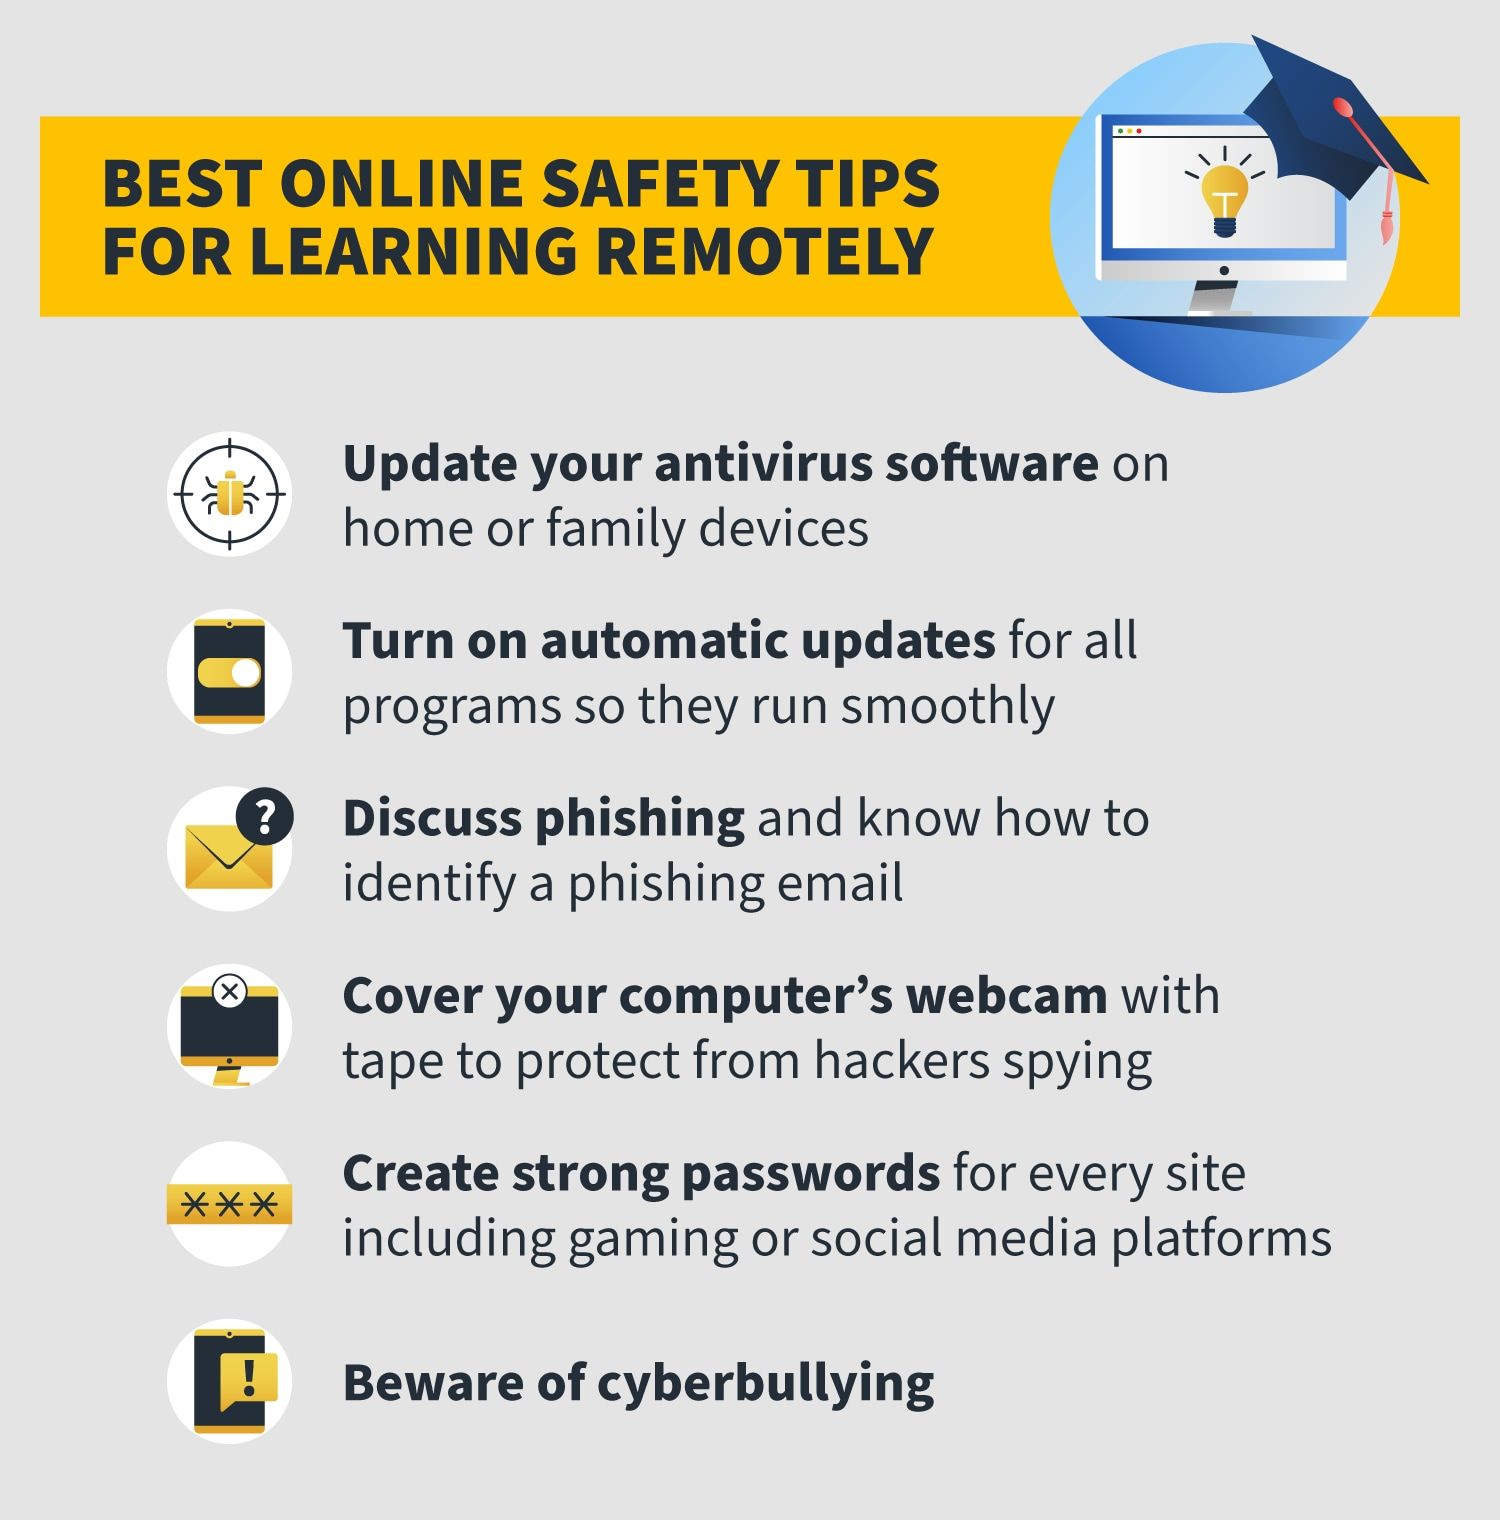 infographic on online safety tips for kids